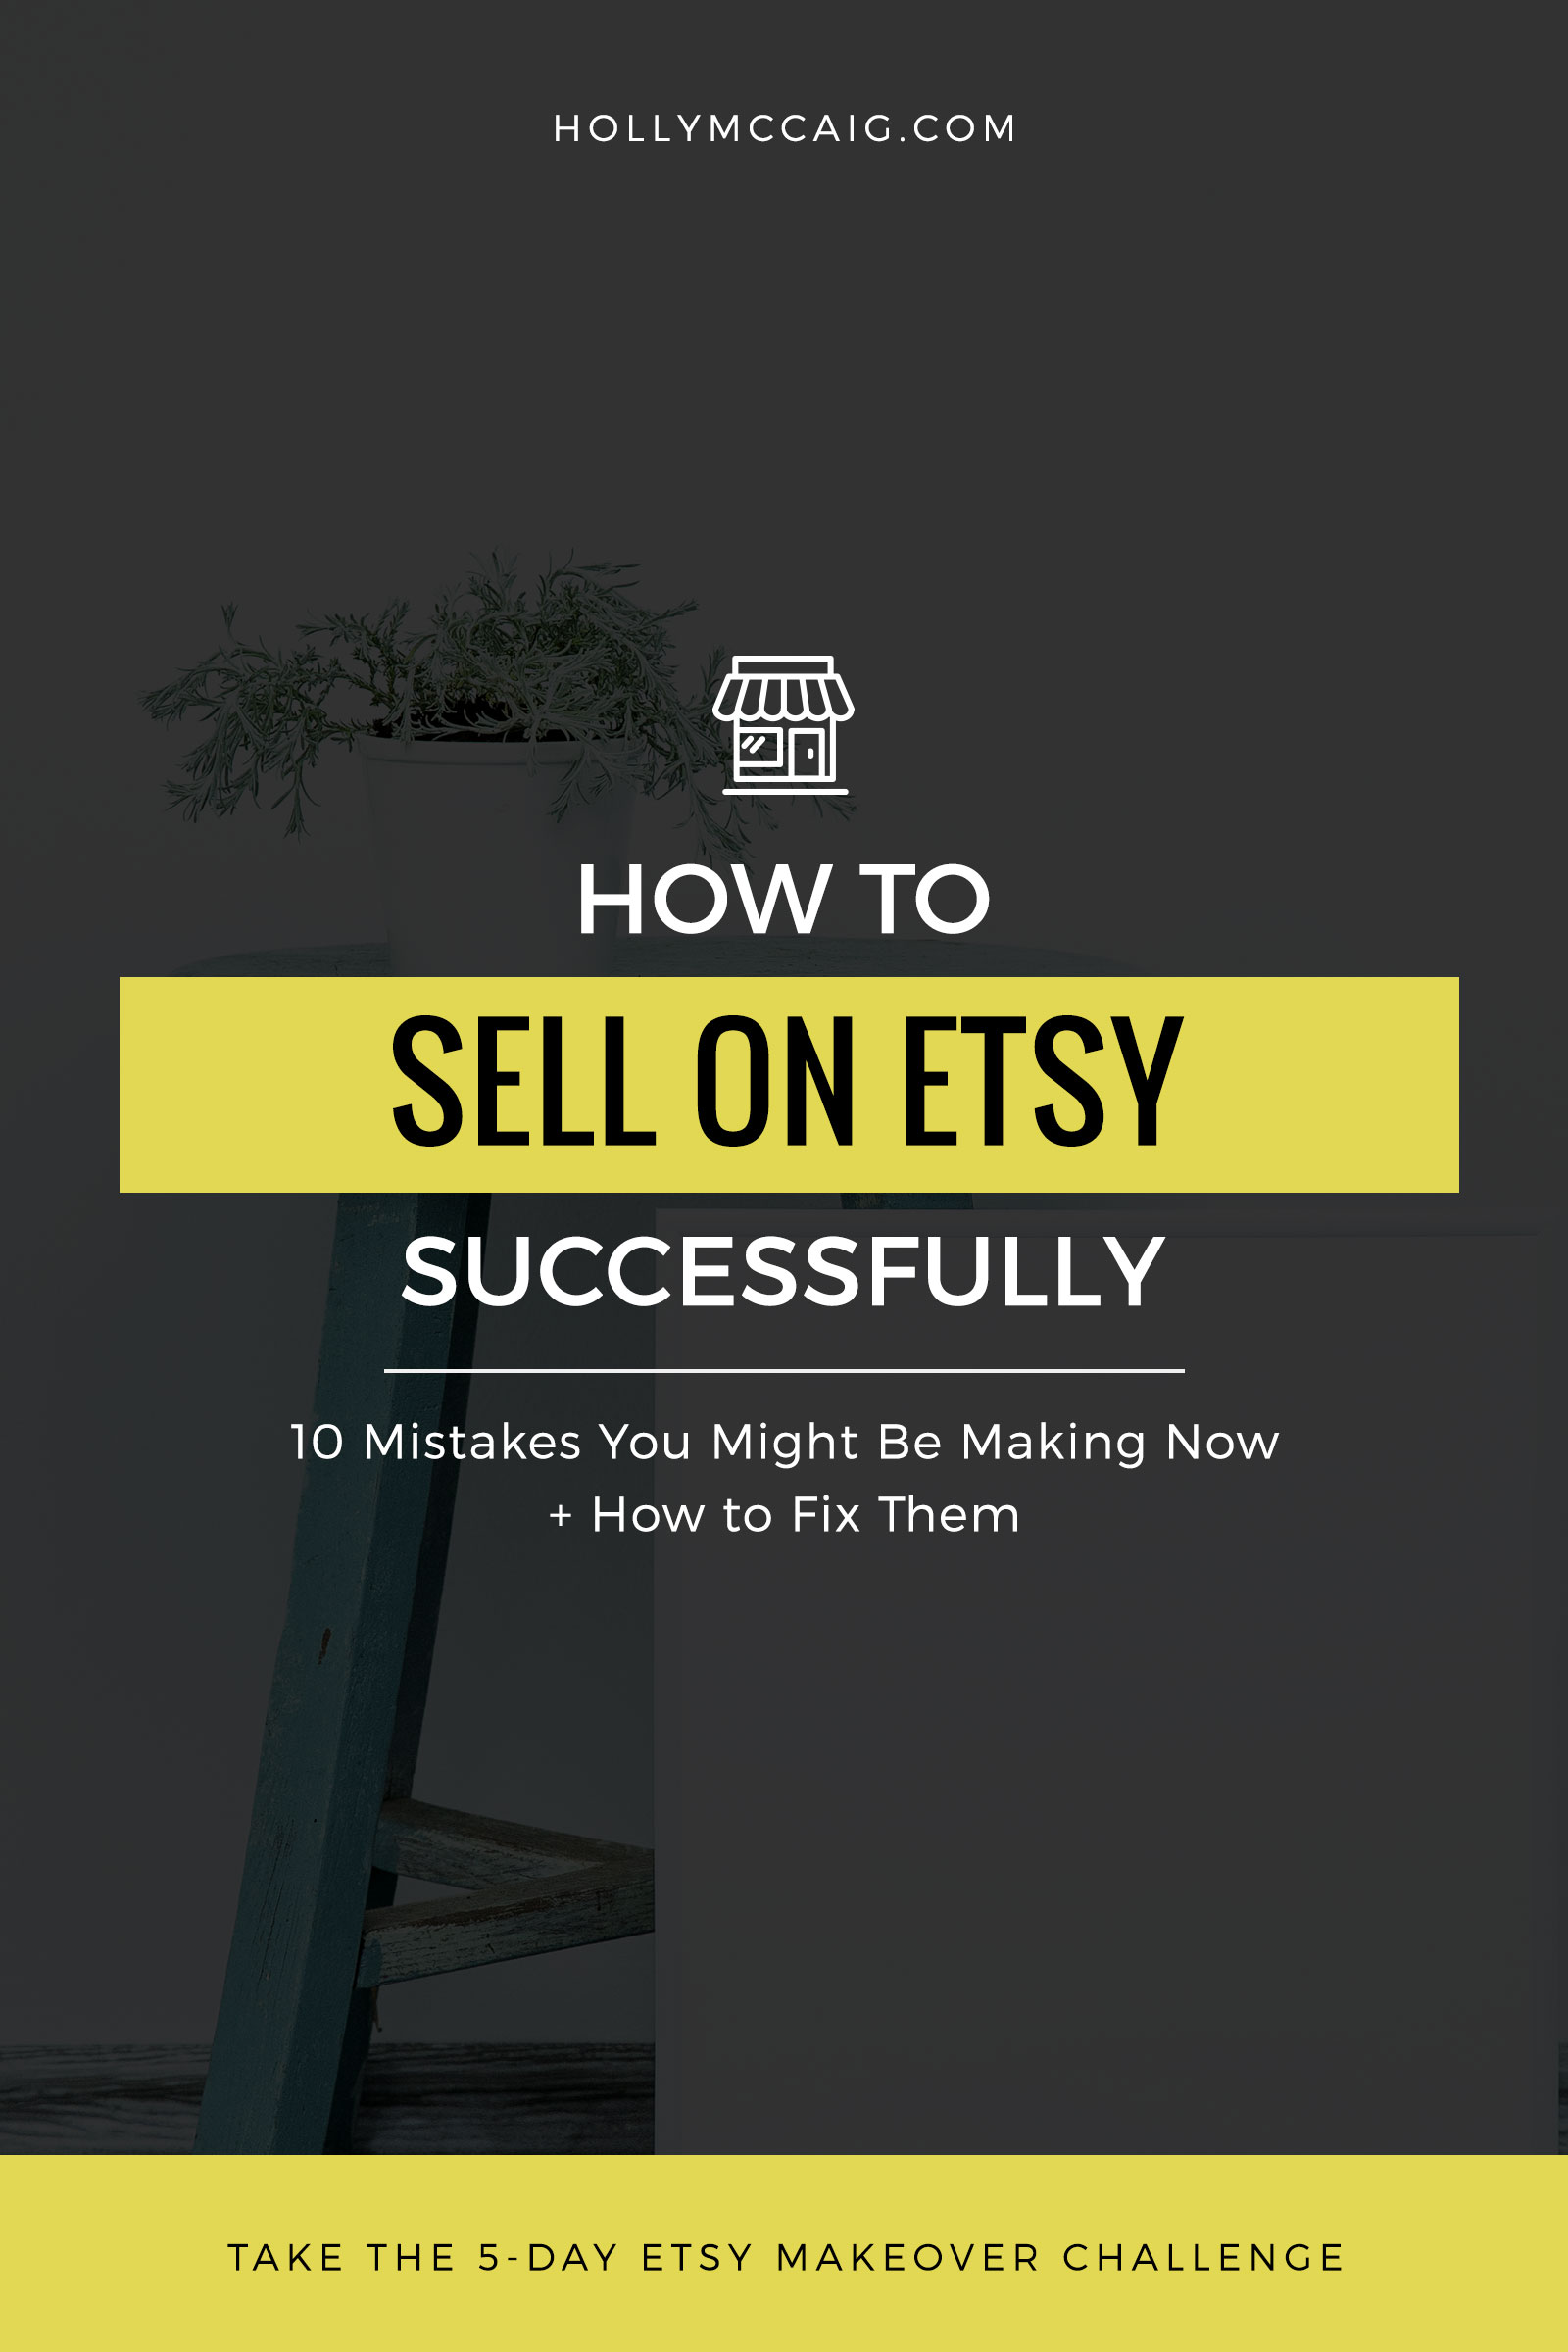 Learn how to sell on Etsy successfully. Are you struggling to make sales on Etsy? You could be making some serious mistakes and I'd like to help you fix them so you can reach your dream goals! Join my free makeover challenge to get your Etsy shop in top shape!